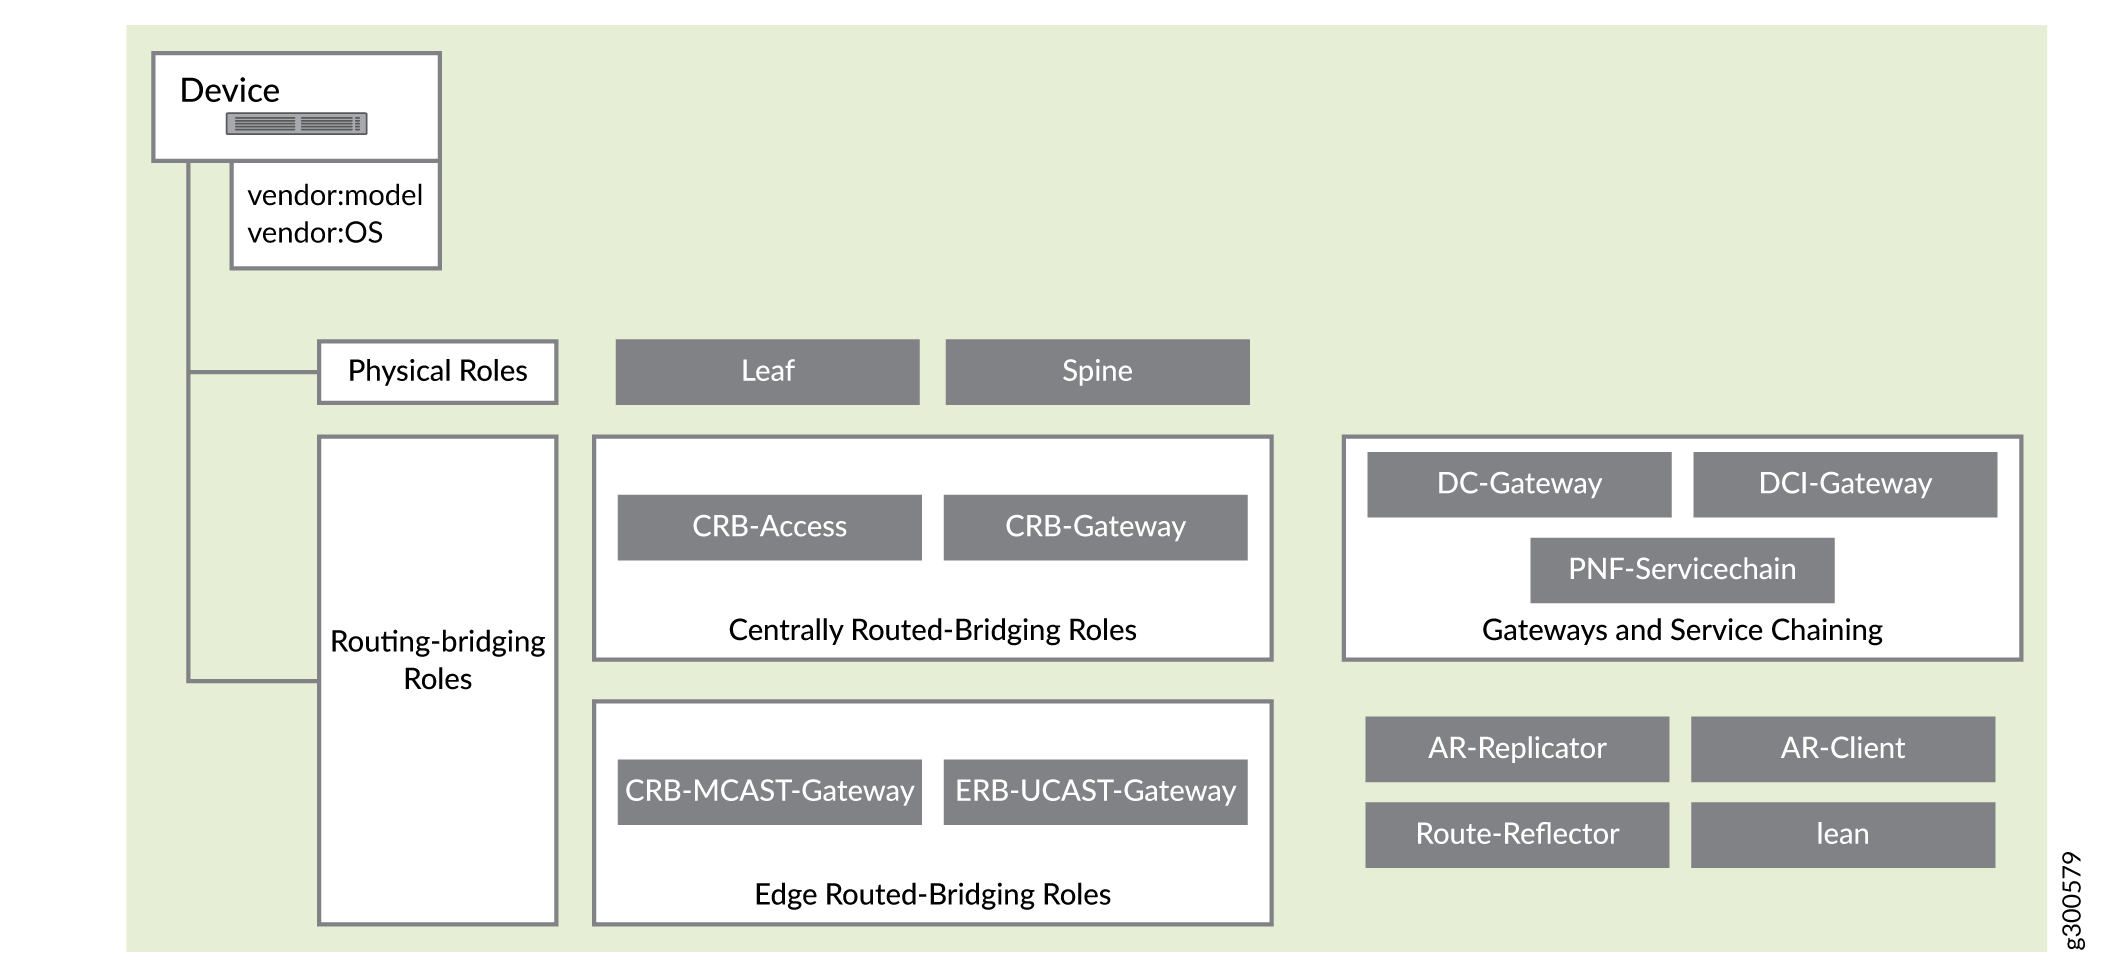 Supported Physical Roles and Routing-Bridging Roles